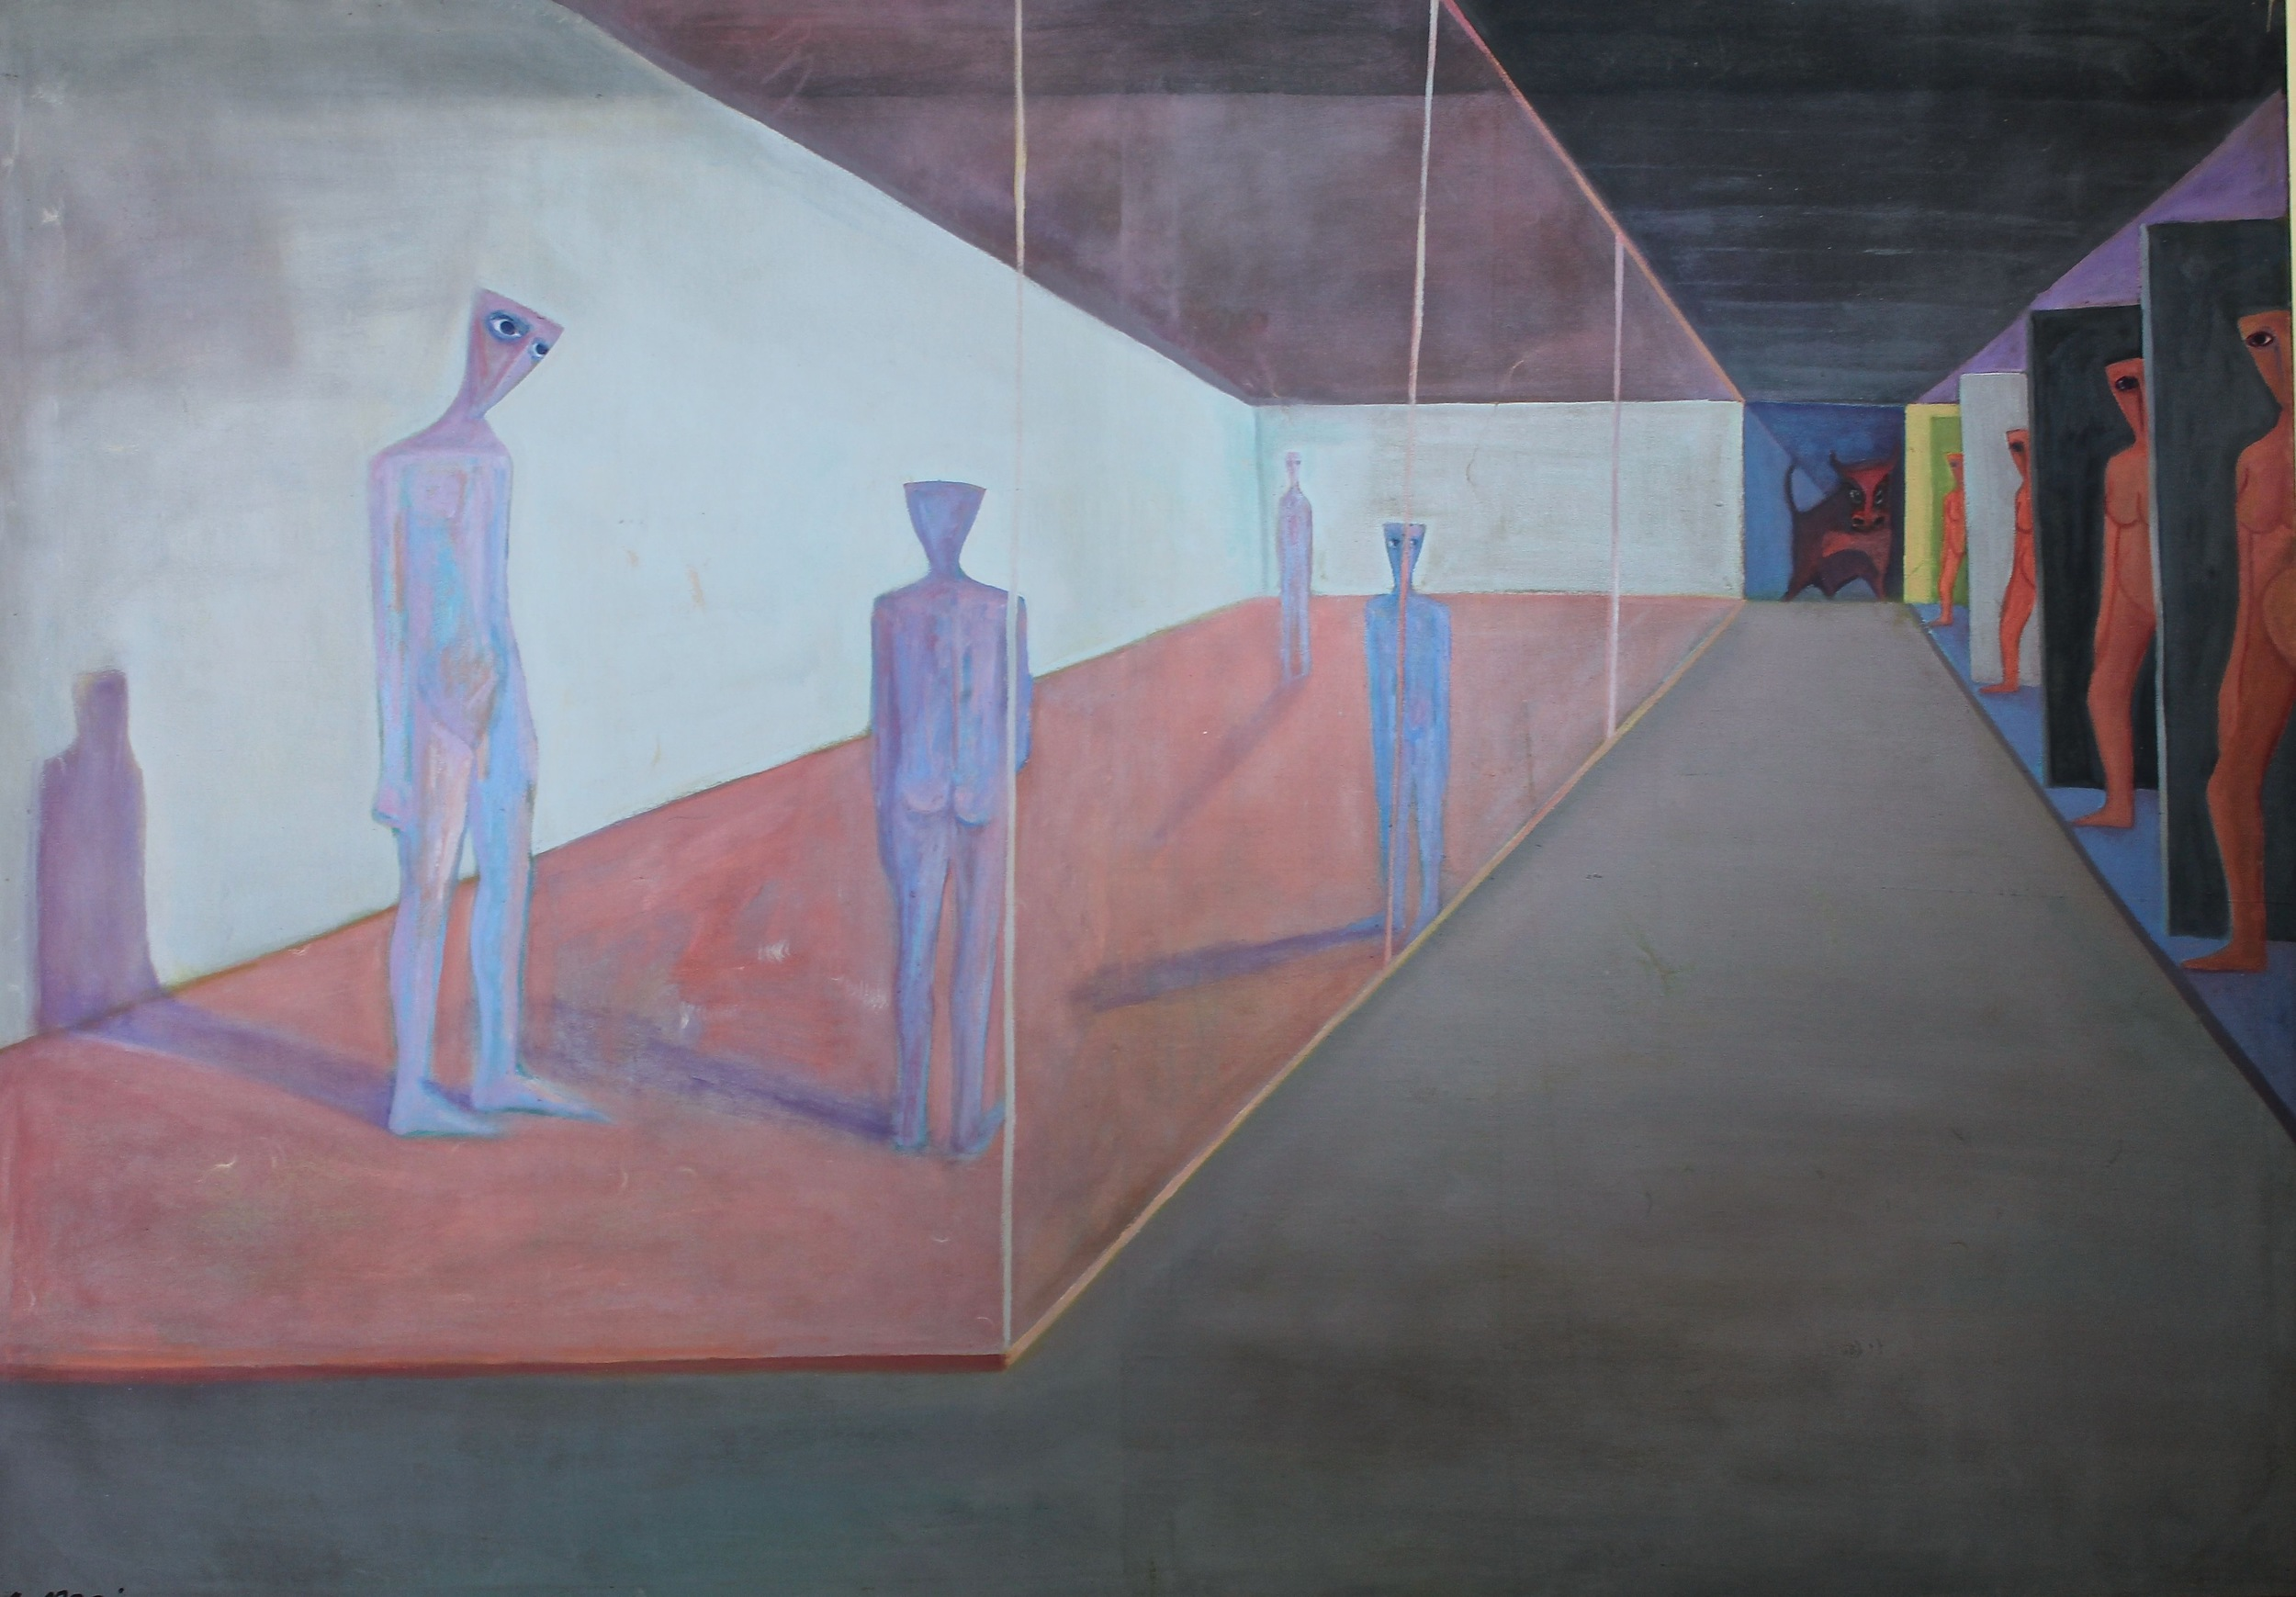 Ahmed Morsi, Waiting, 1975, Oil on canvas, 178 x 125 cm.